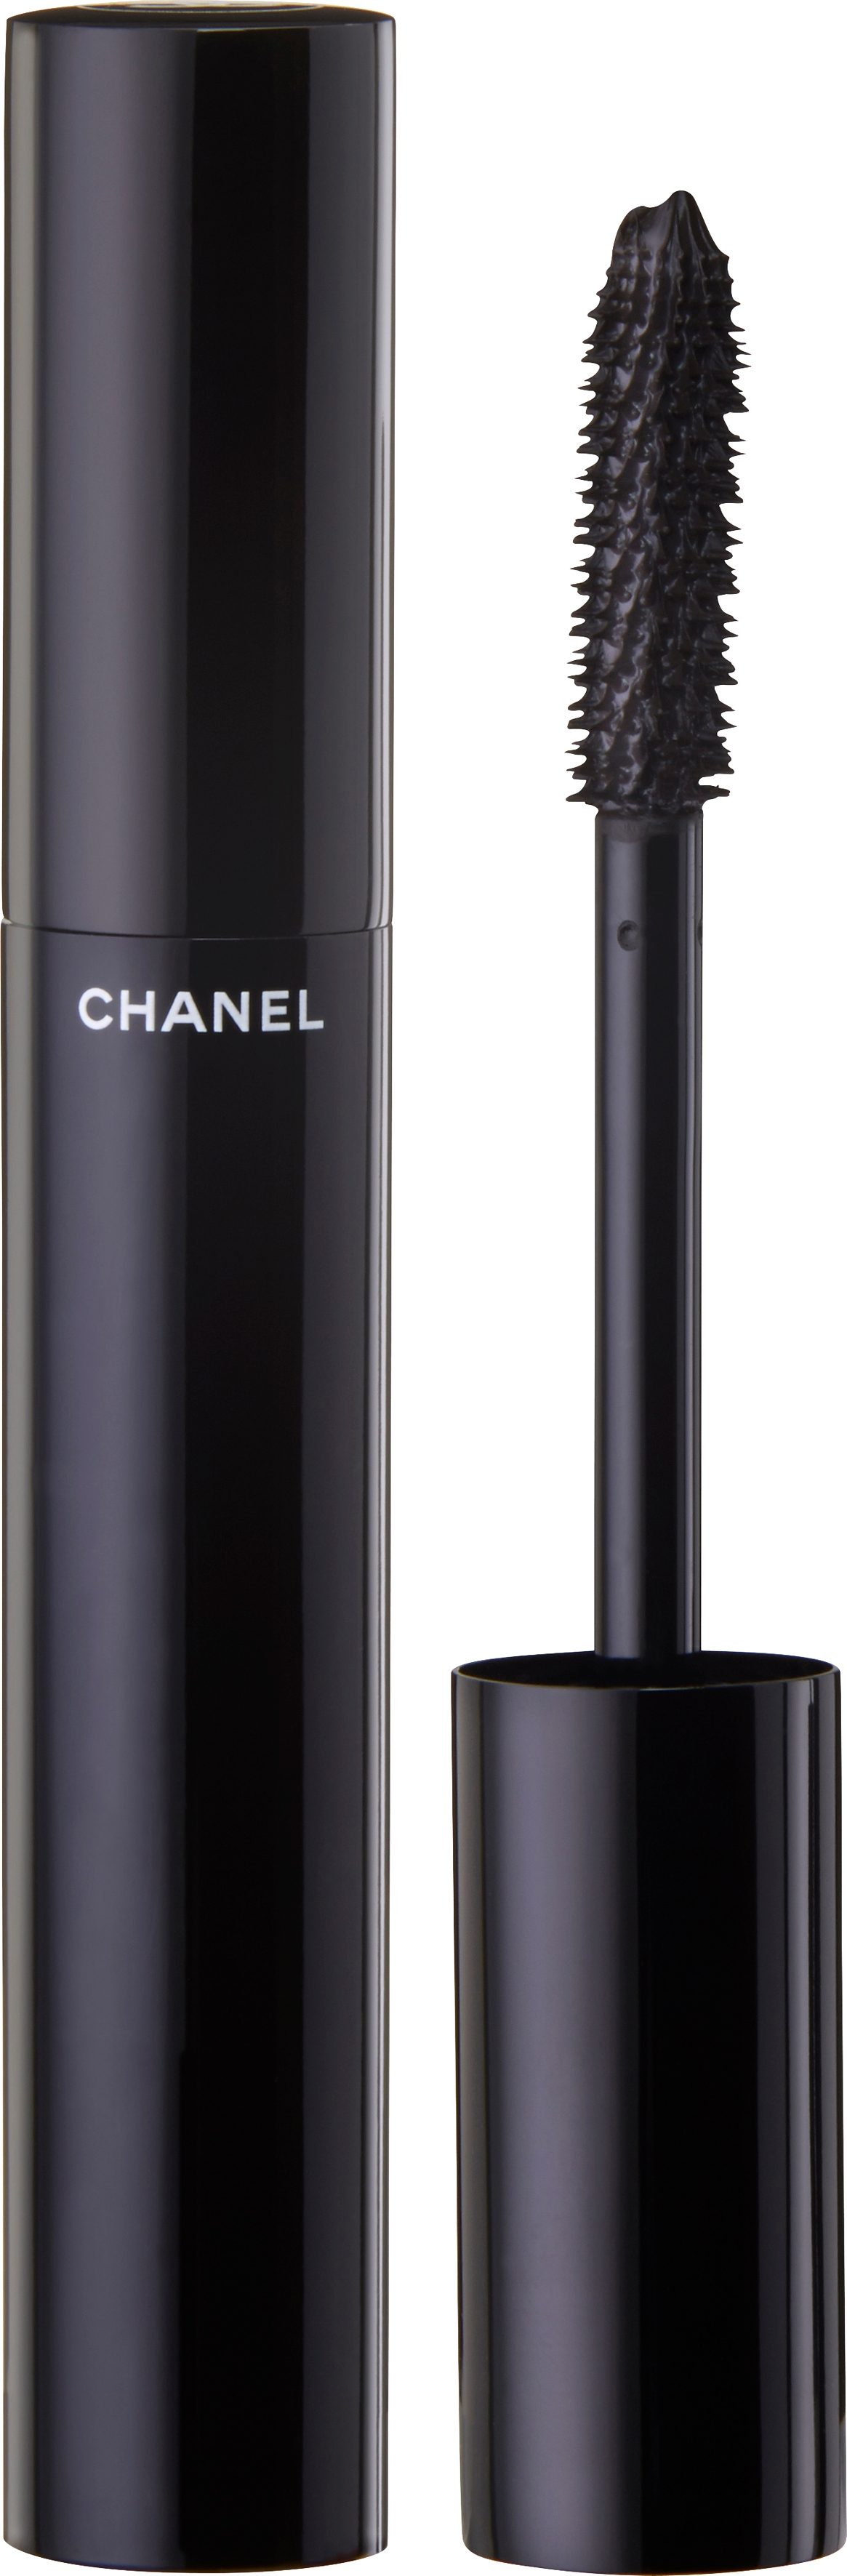 Chanel, »Le Volume de Chanel«, Mascara